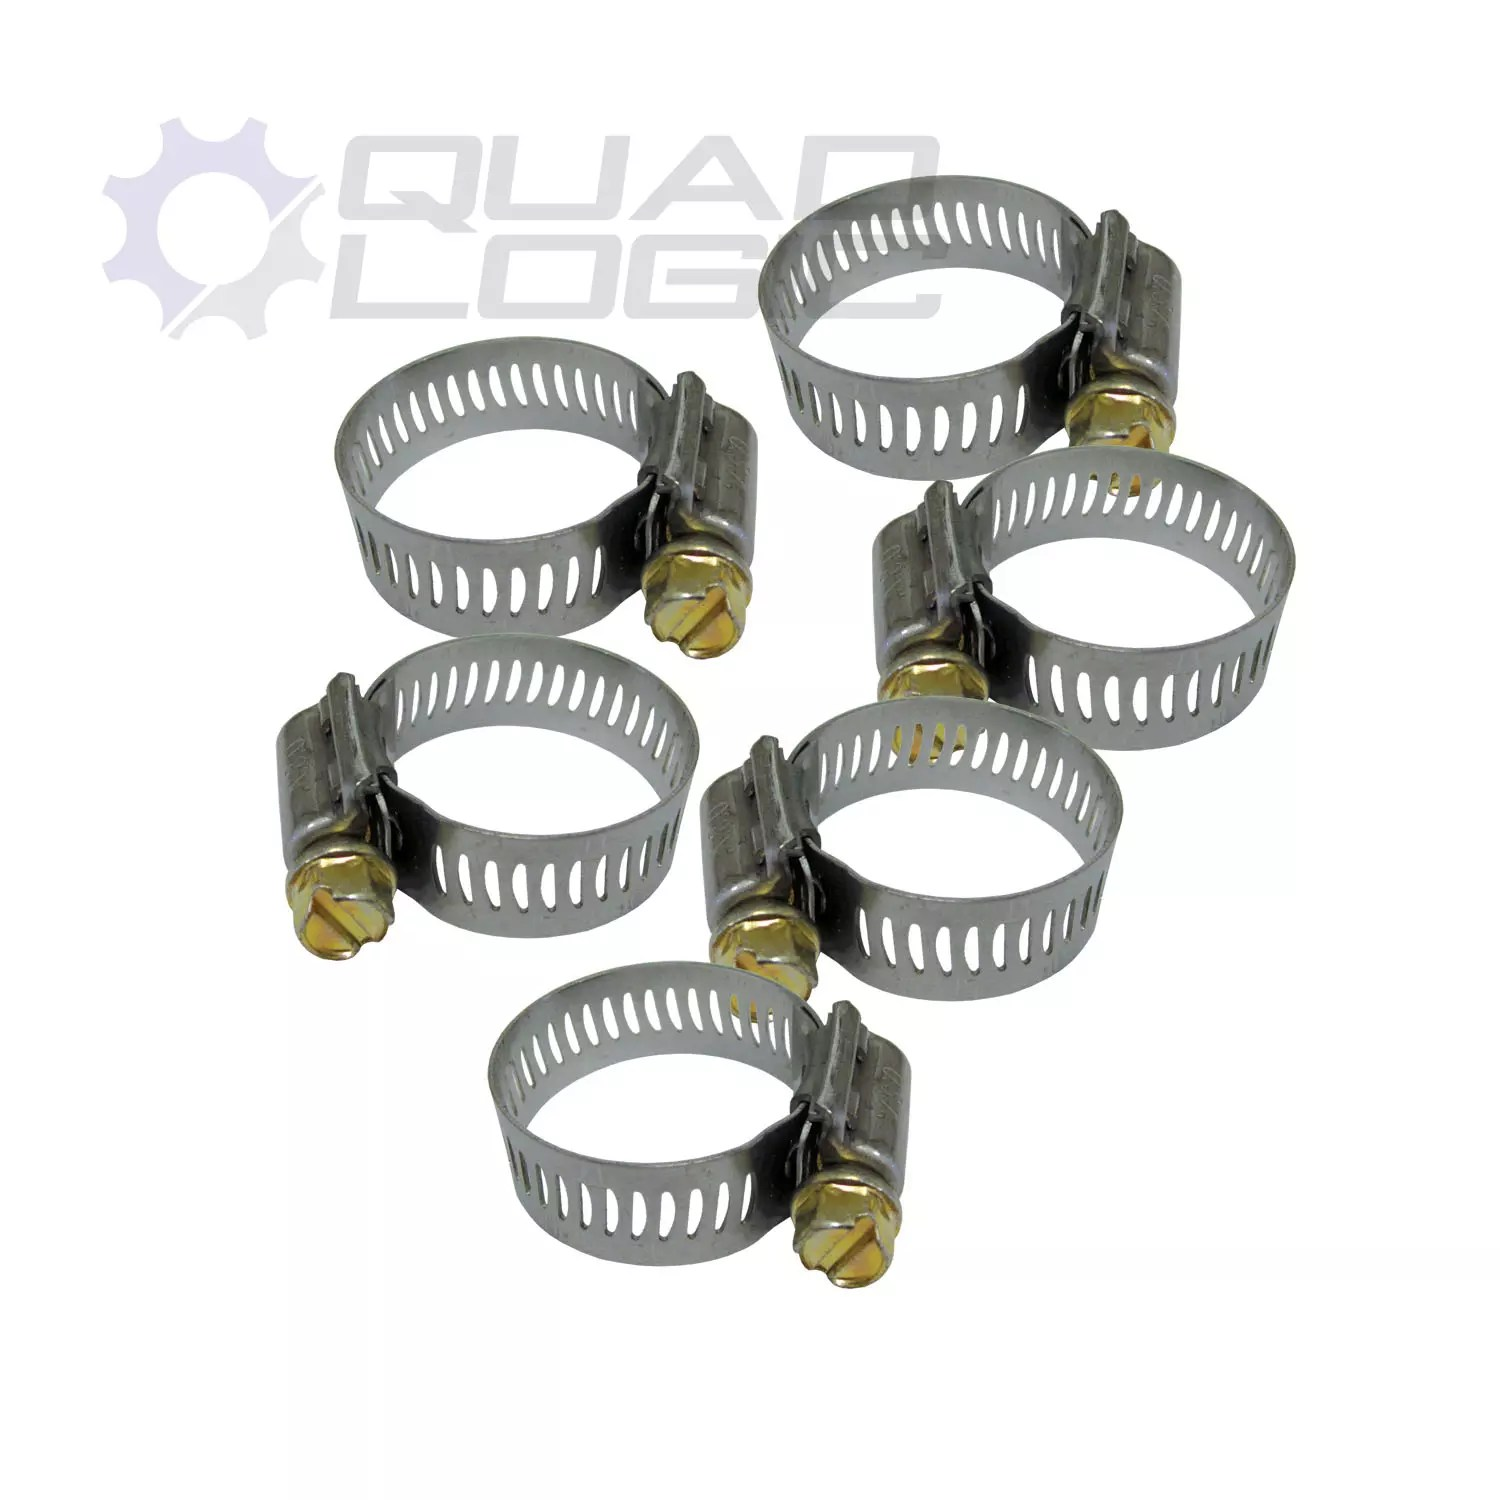 Scrambler 500 Coolant Hose Clamps Set Of 6